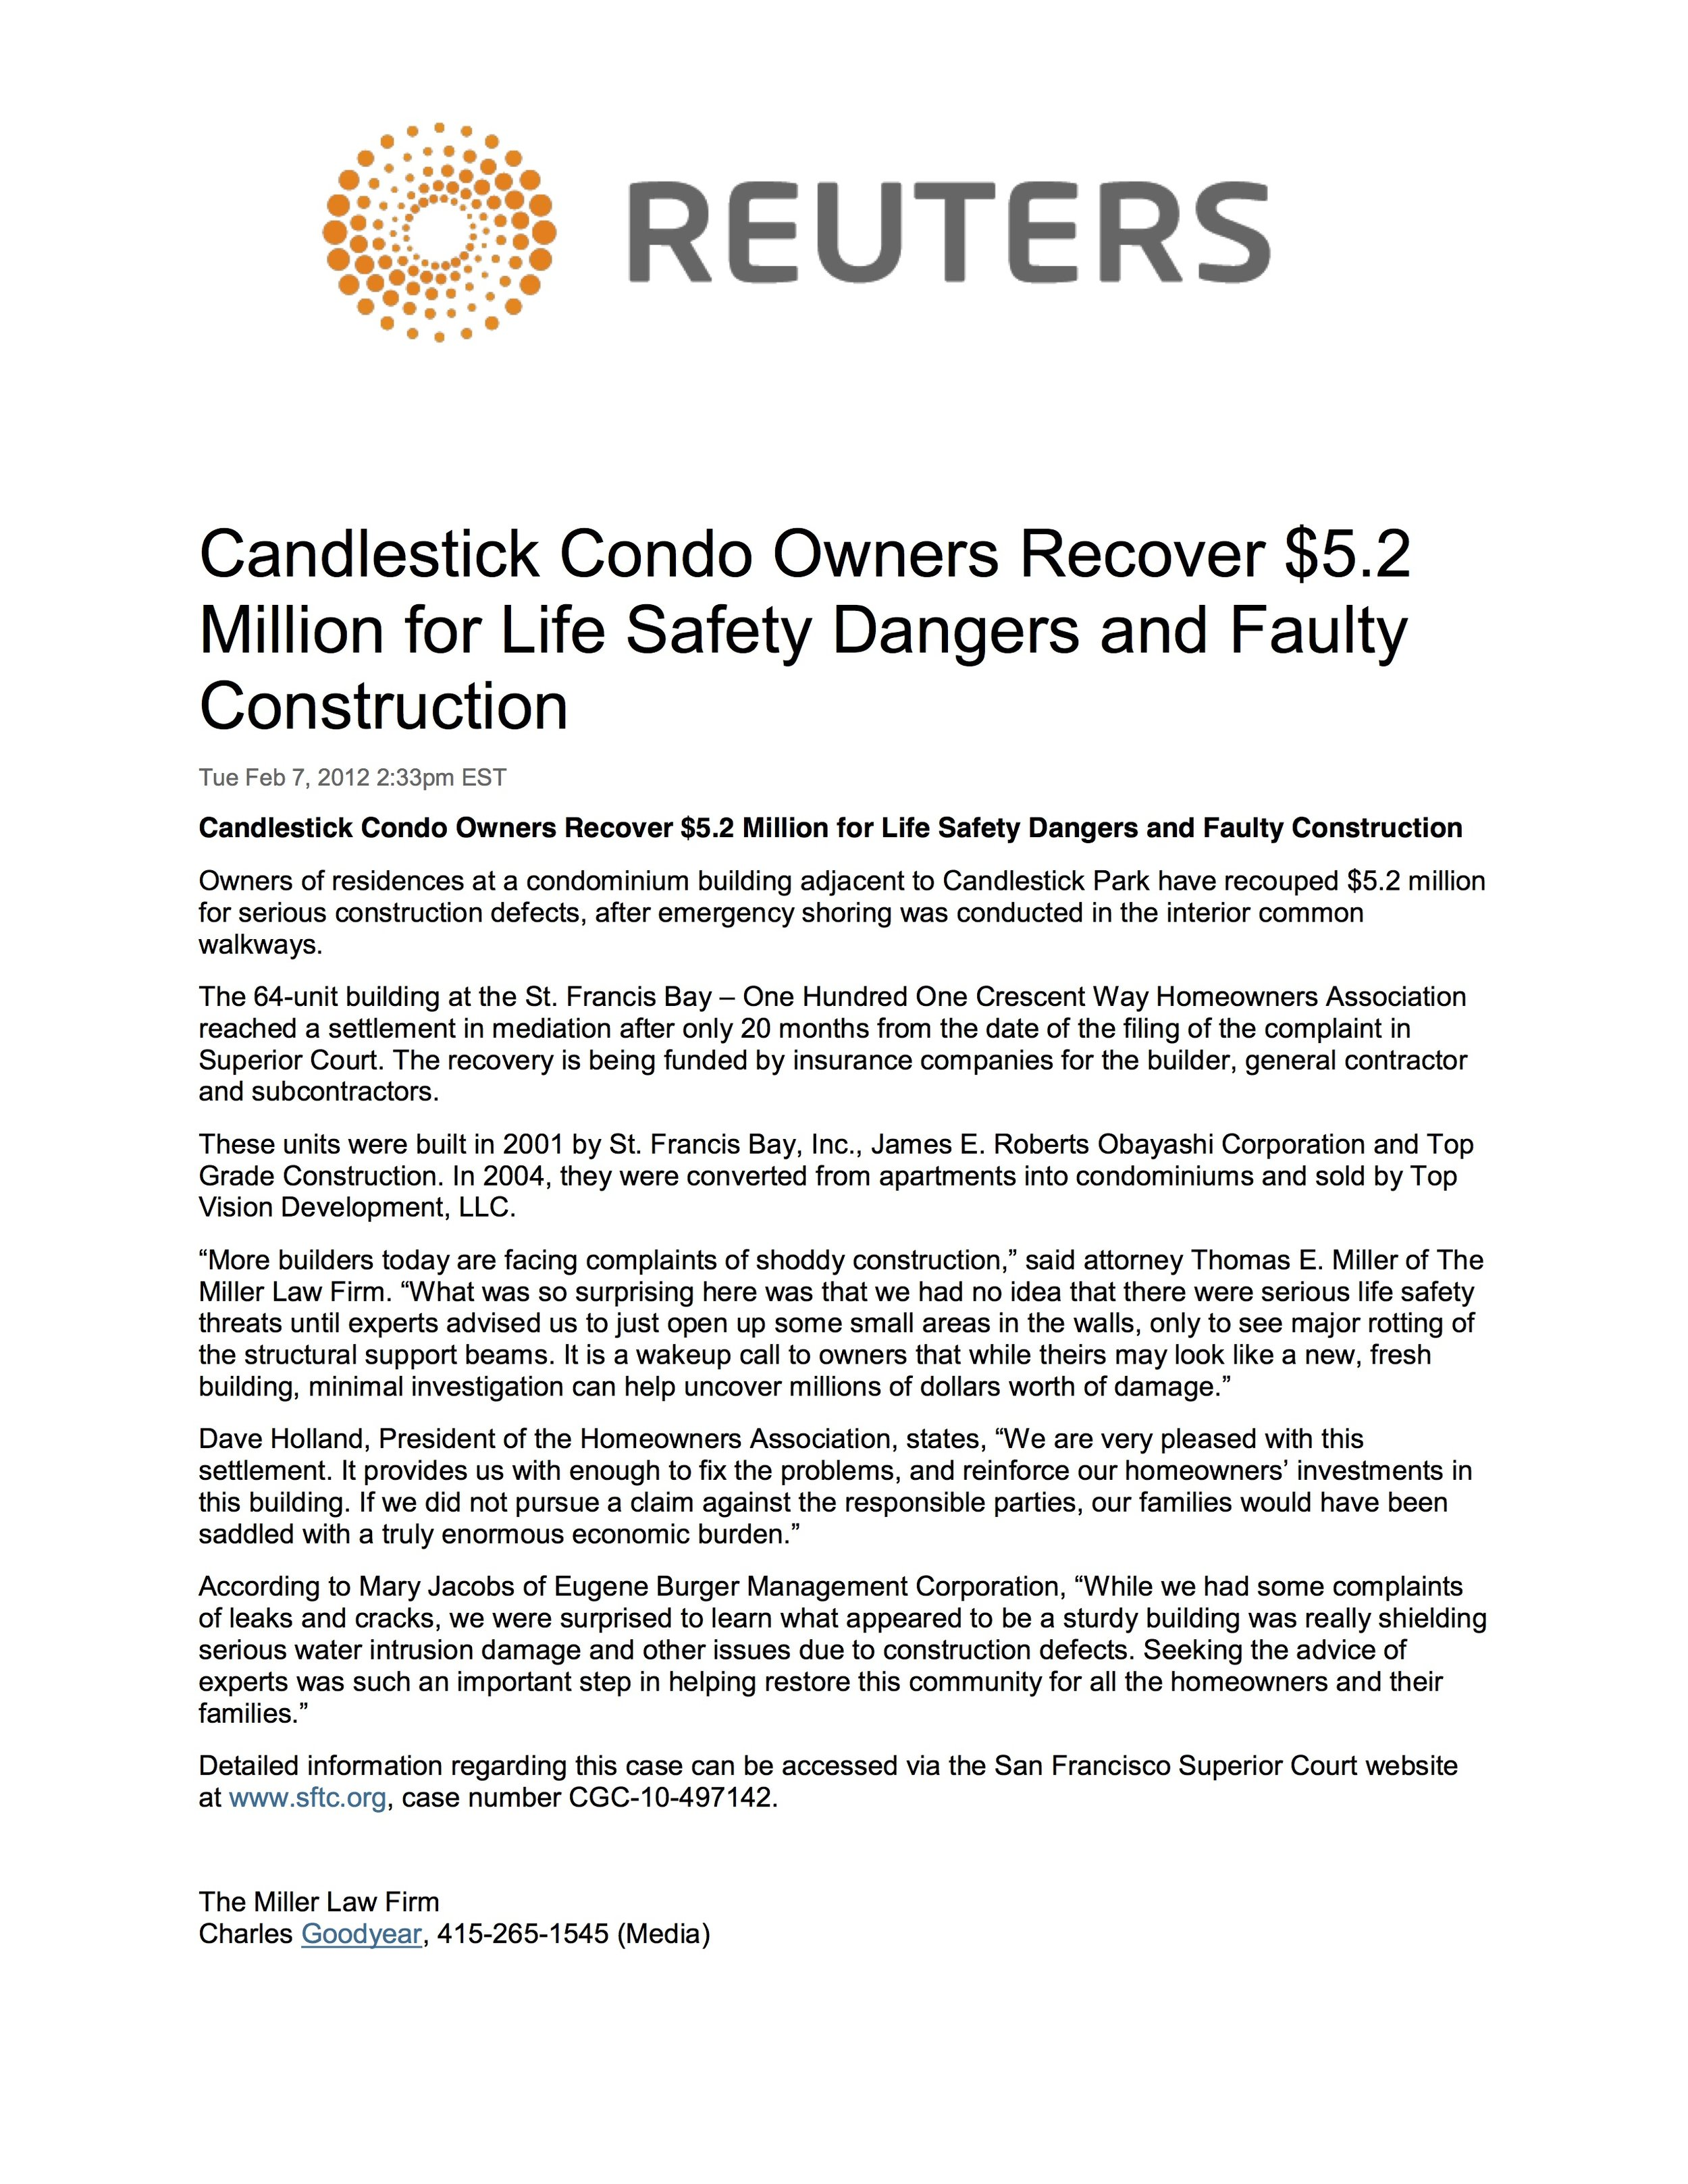 Reuters - Candlestick Condo Owners Recover